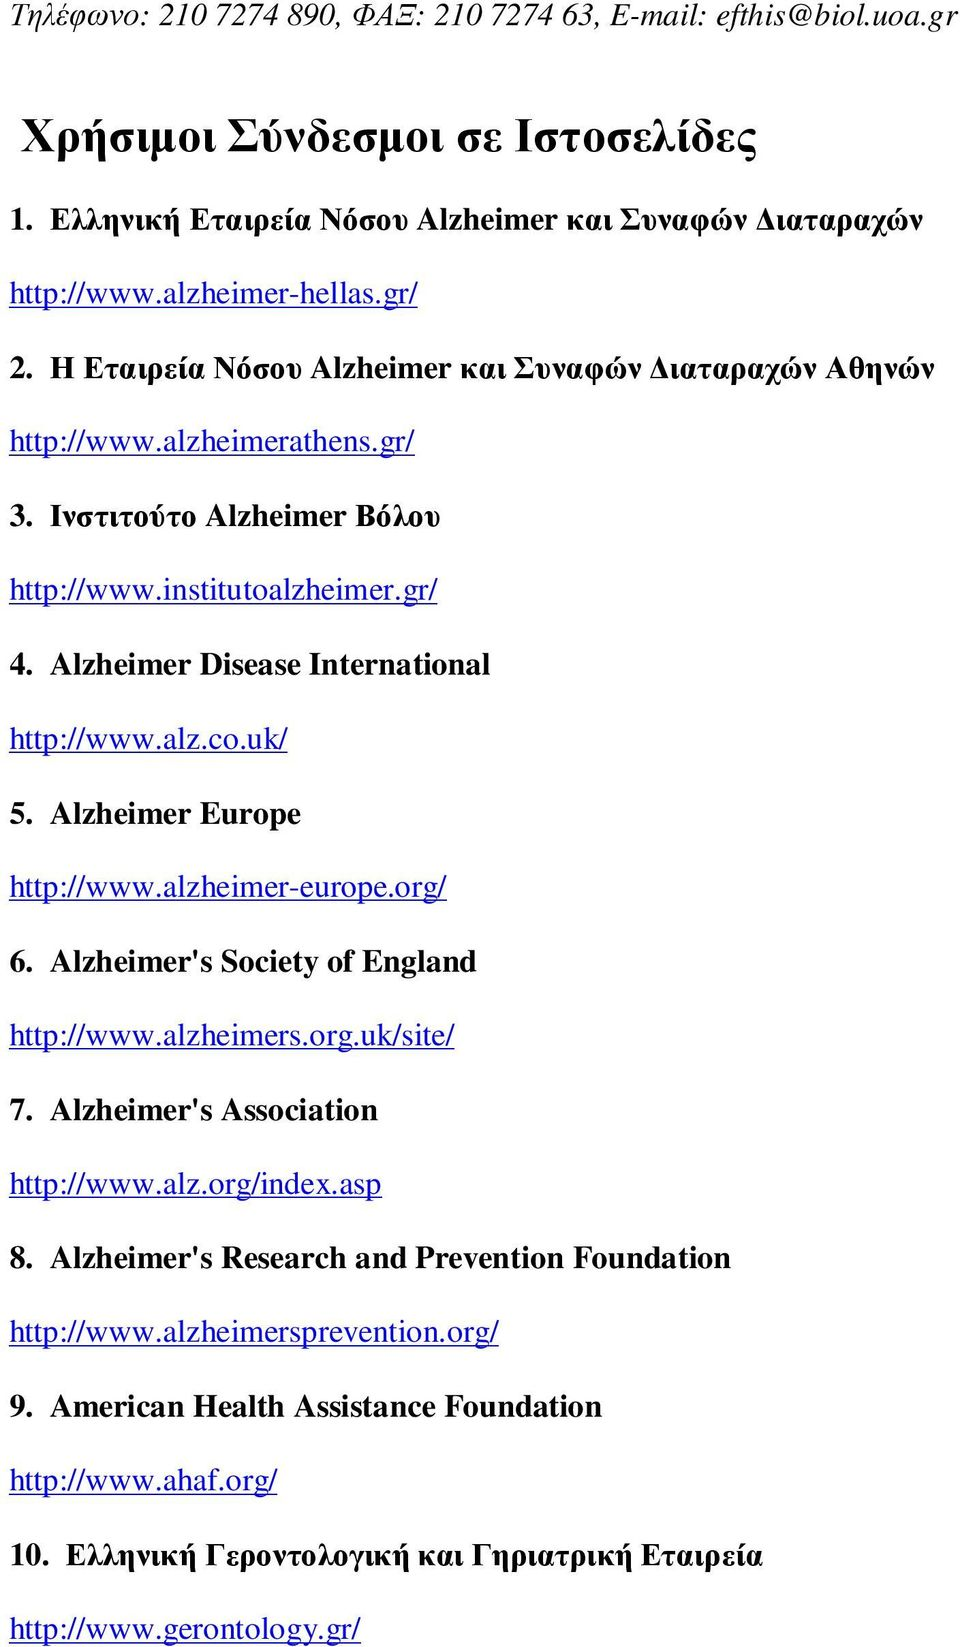 alz.co.uk/ 5. Alzheimer Europe http://www.alzheimer-europe.org/ 6. Alzheimer's Society of England http://www.alzheimers.org.uk/site/ 7. Alzheimer's Association http://www.alz.org/index.asp 8.